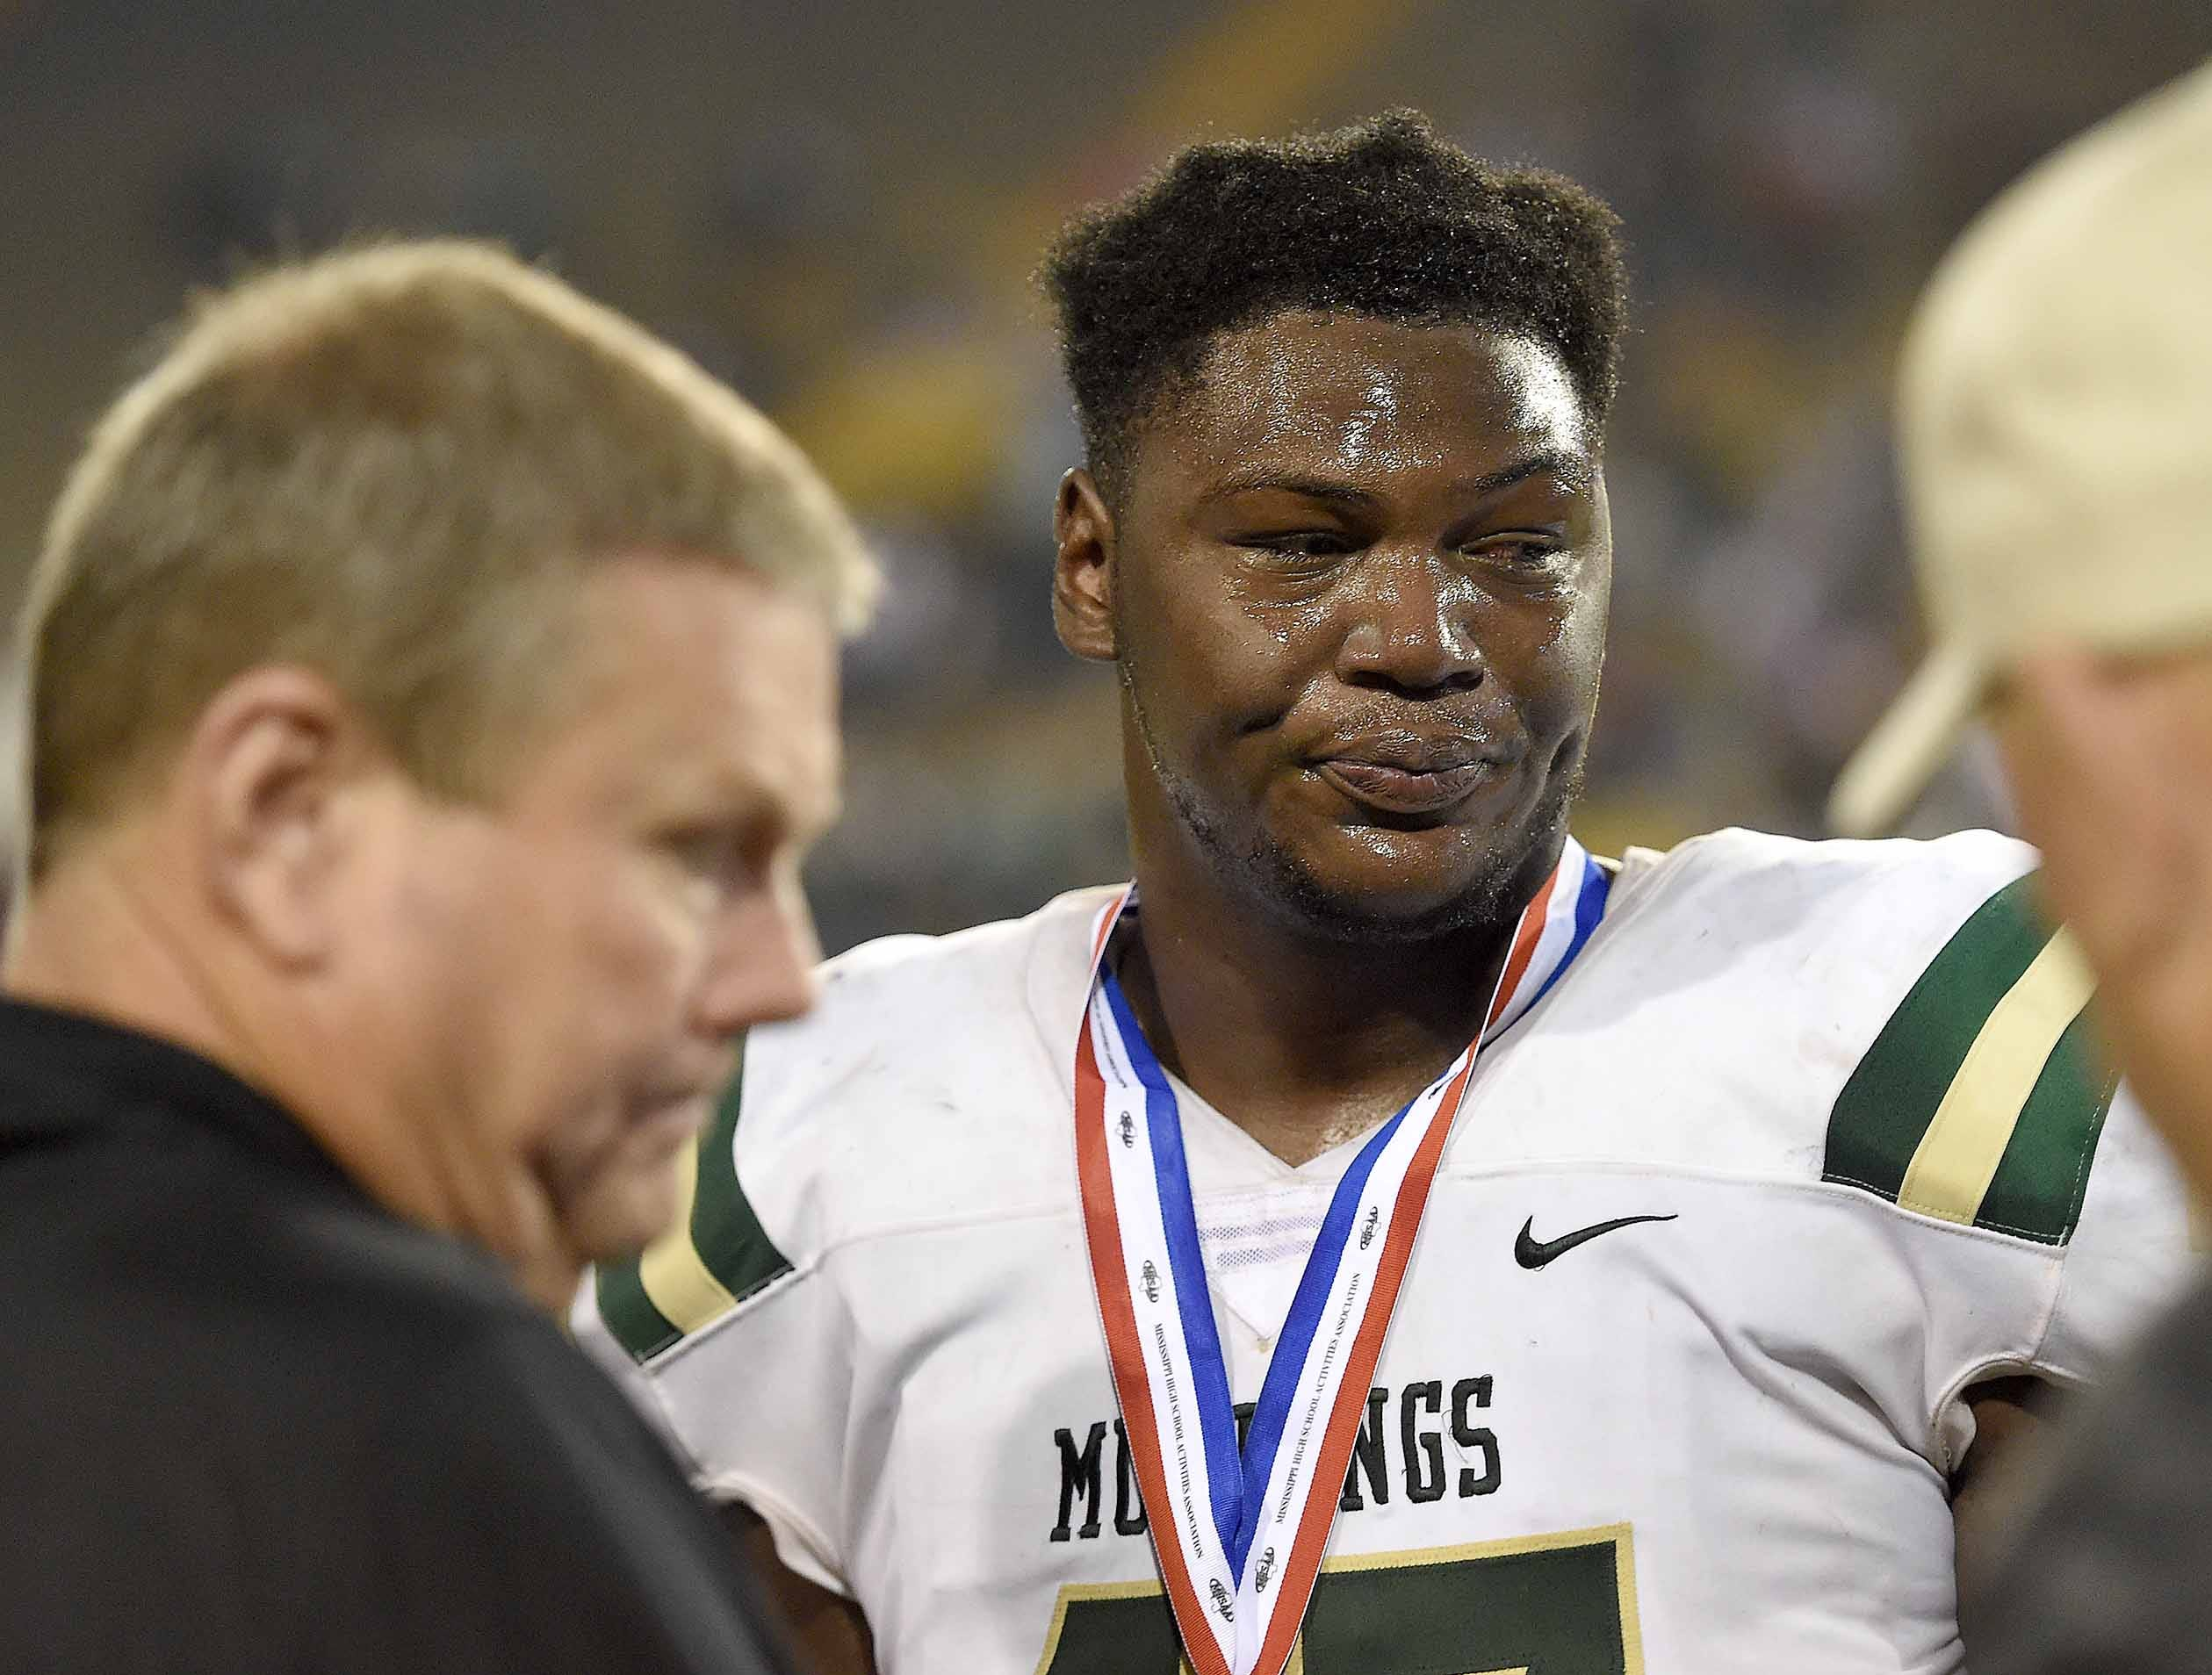 West Jones' Byron Young receives his silver medal on Saturday, December 1, 2018, in the MHSAA BlueCross BlueShield Gridiron Classic High School Football Championships in M.M. Roberts Stadium on the University of Southern Mississippi campus in Hattiesburg, Miss.